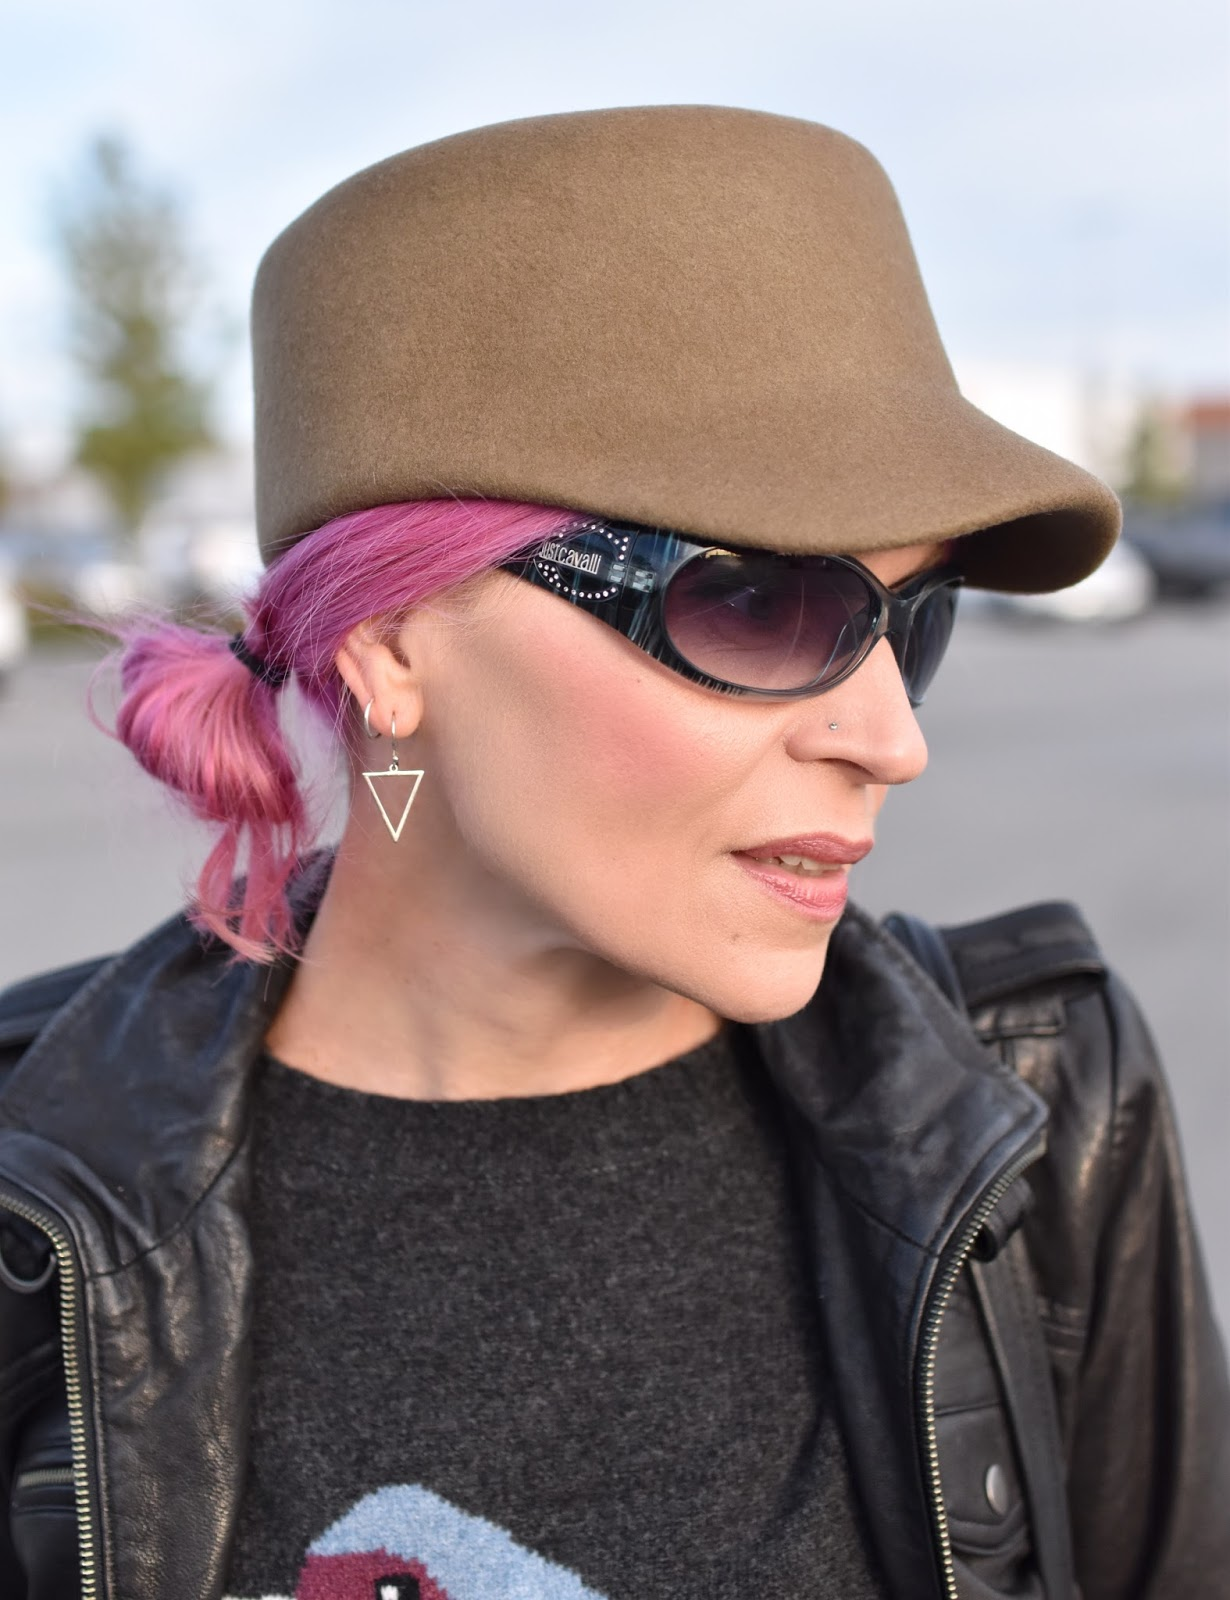 Monika Faulkner outfit inspiration - military-inspired felt cap, Just Cavalli sunglasses, fuchsia hair